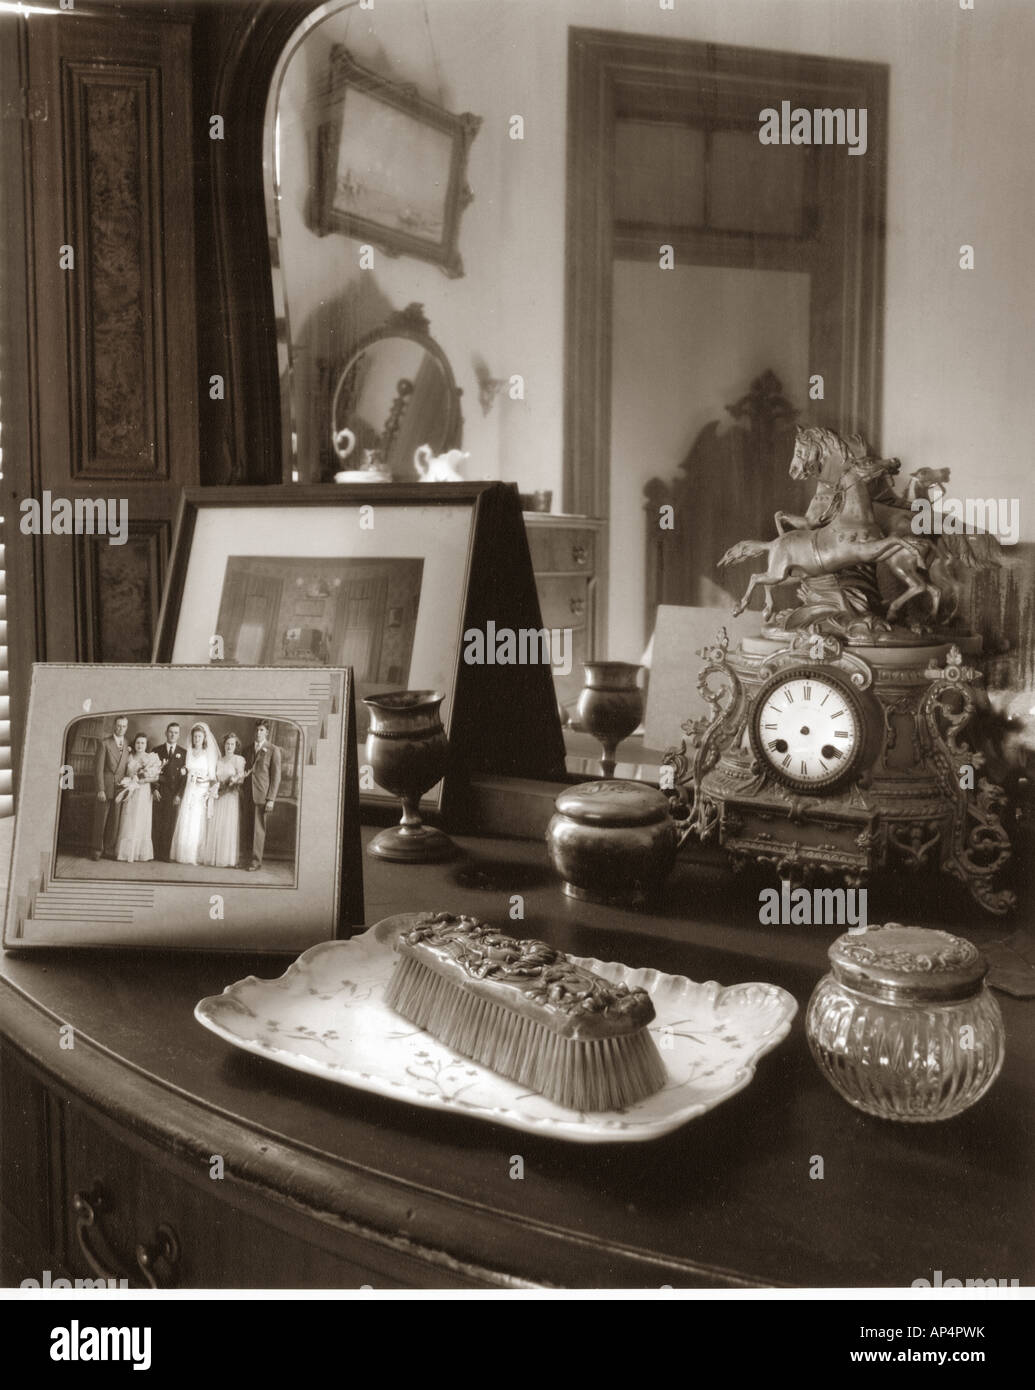 late 1800s bedroom dresser with victorian decorative accessories and stock photo 15675150 alamy - Bedroom Decorative Accessories